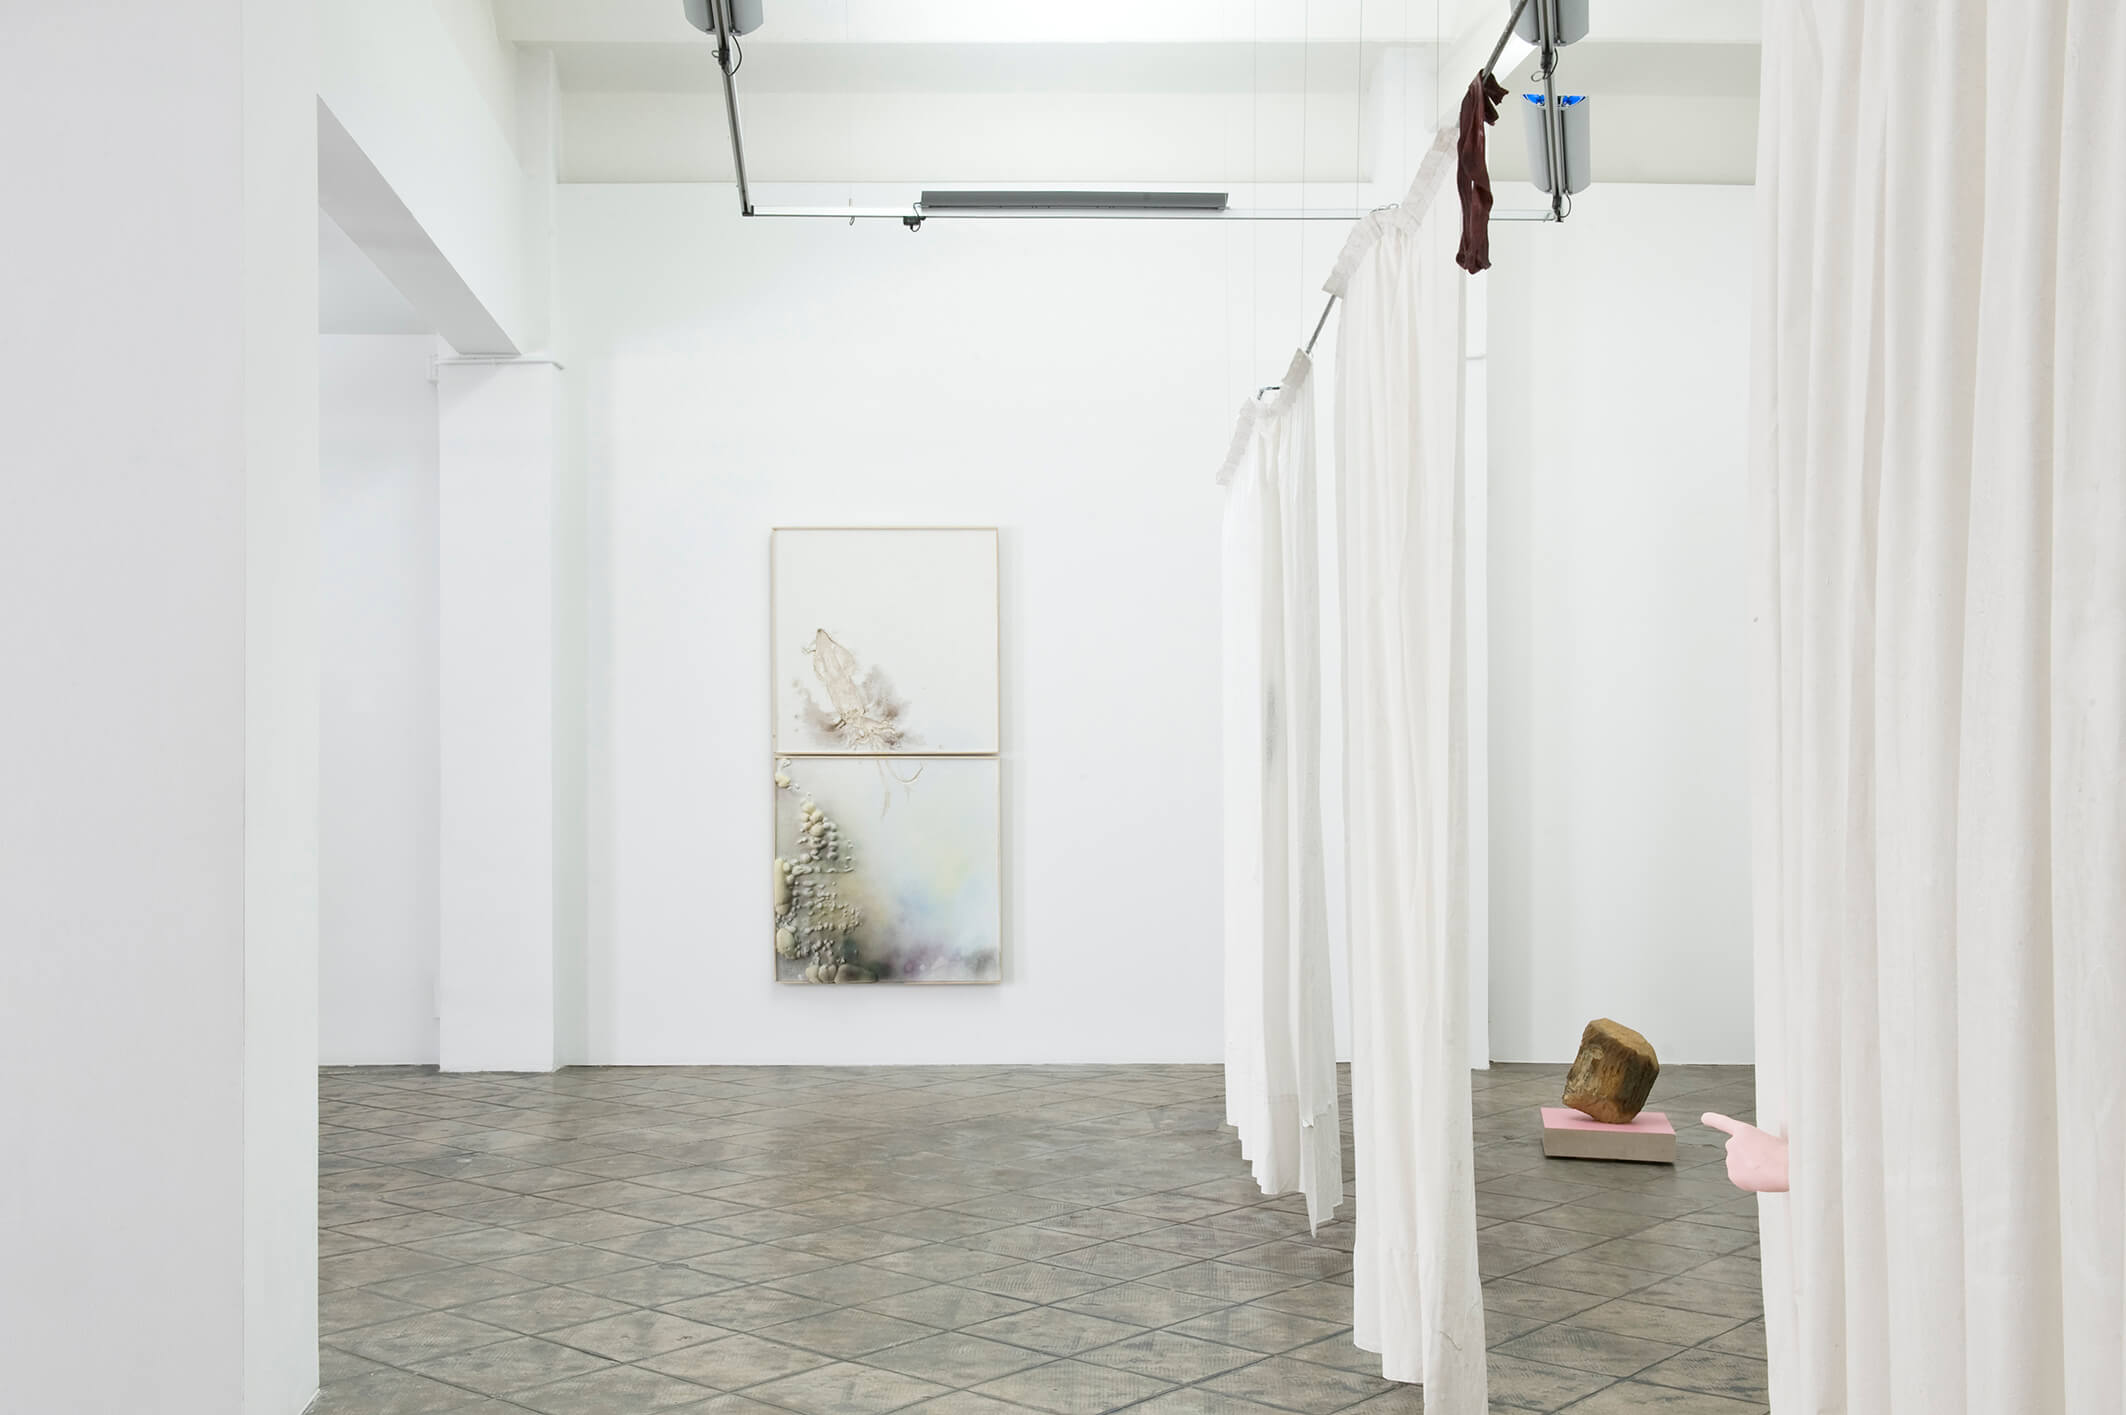 Installation view: The Constant Repetition of False, ProjecteSD, Barcelona, 2014   The Constant Repetition of False   ProjecteSD